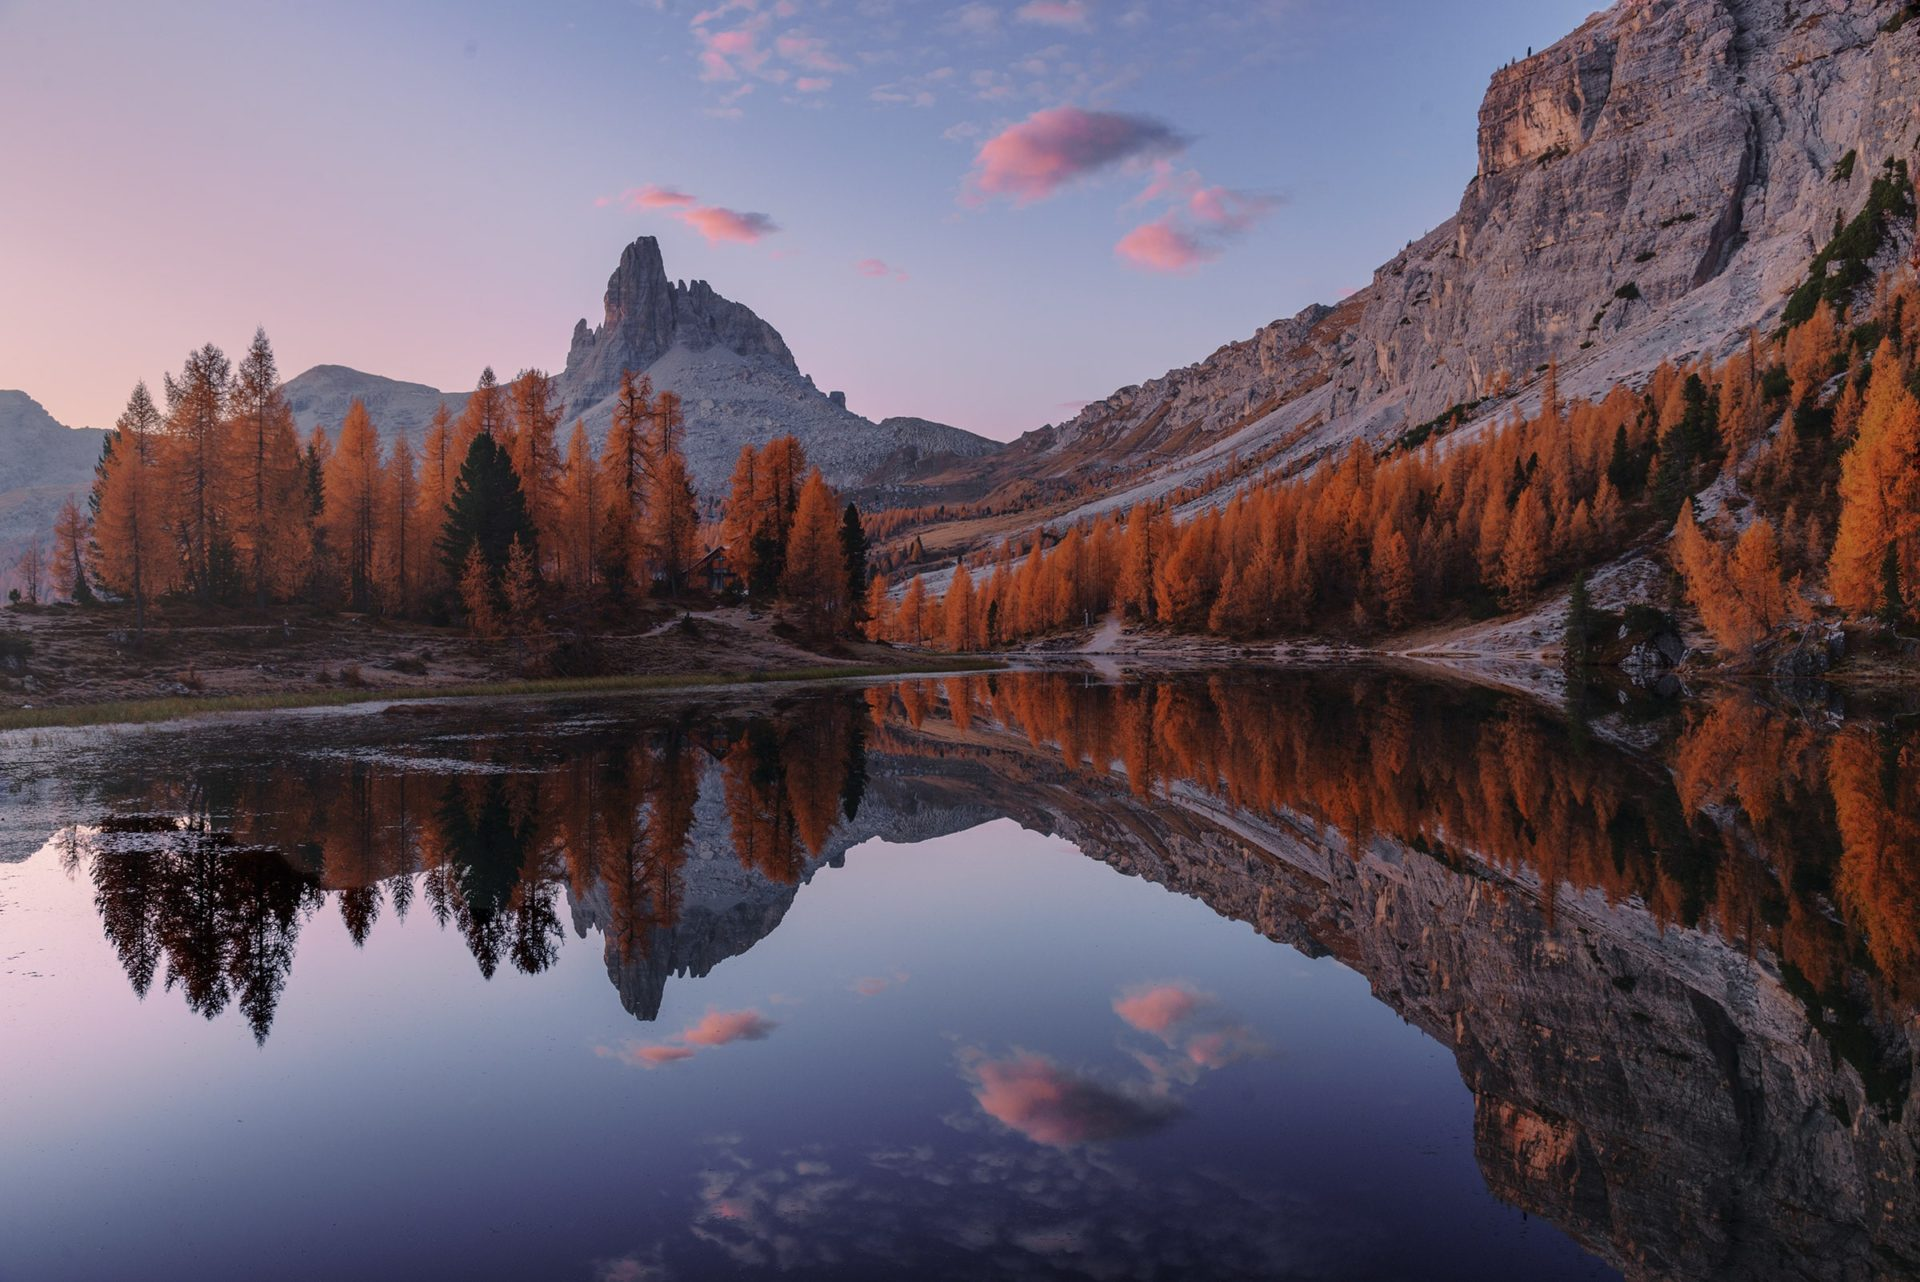 Perfect autumn reflection in the Dolomites during a fall photography tour